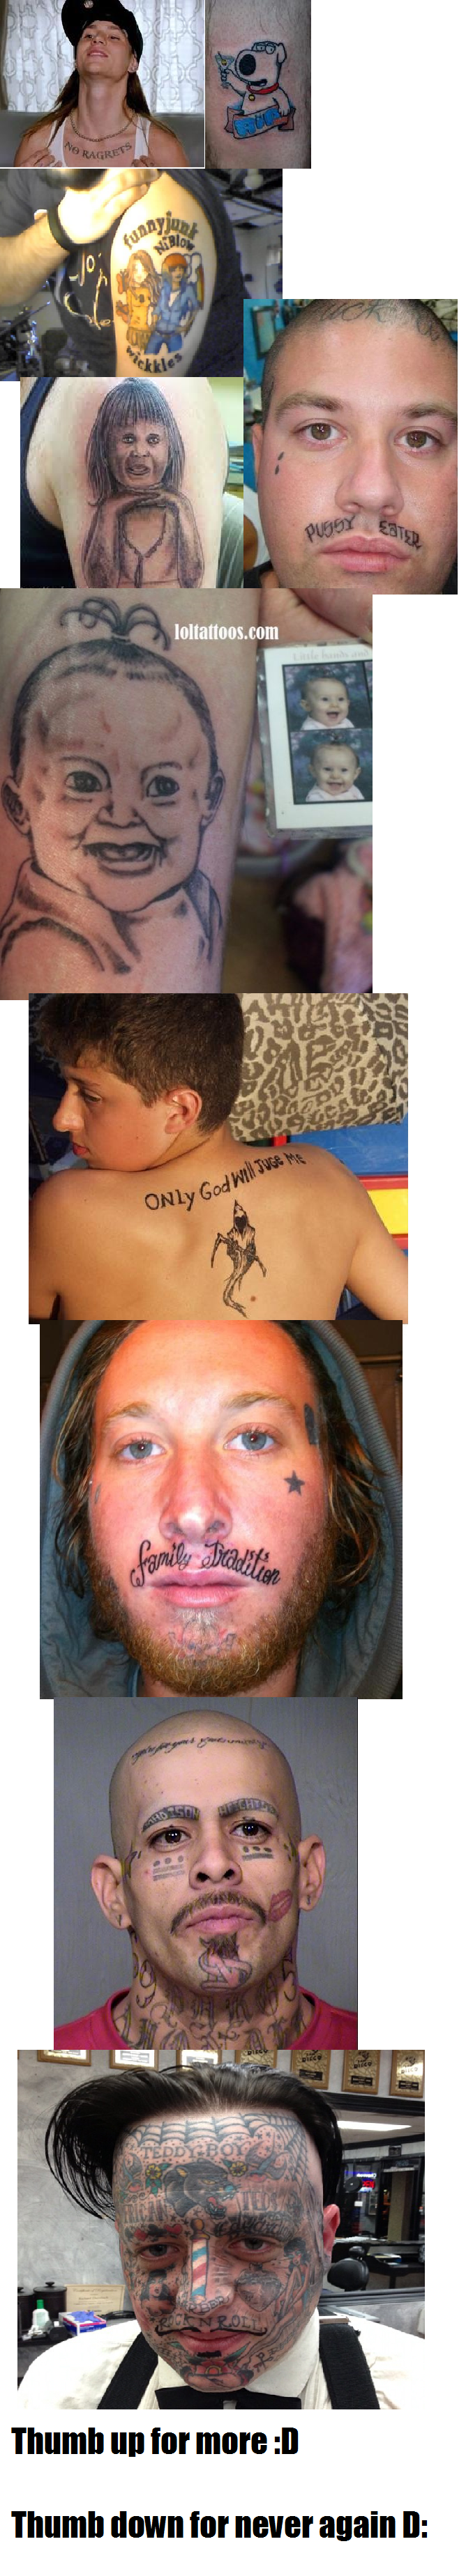 """Horrible Tattoo Compilation Part 2. Since the last once was well received I made this one.. The """"No Ragrets"""" one was from that We are the Miller's movie, or whatever it was called."""